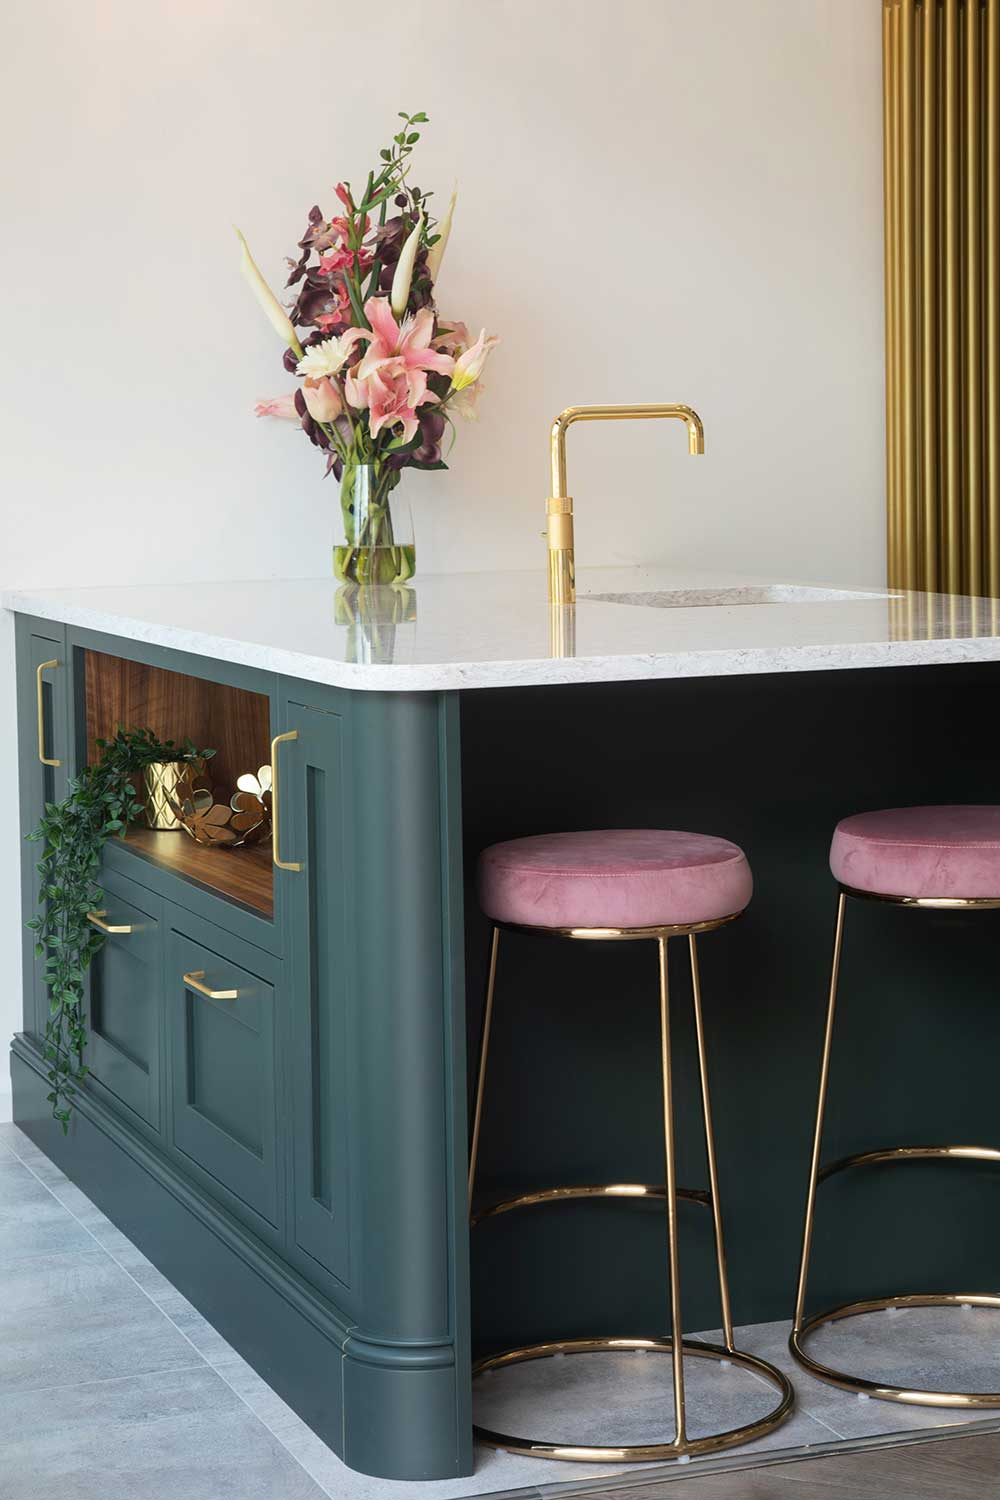 formosa kitchens showroom green units gold and pink velvet bar stool seats